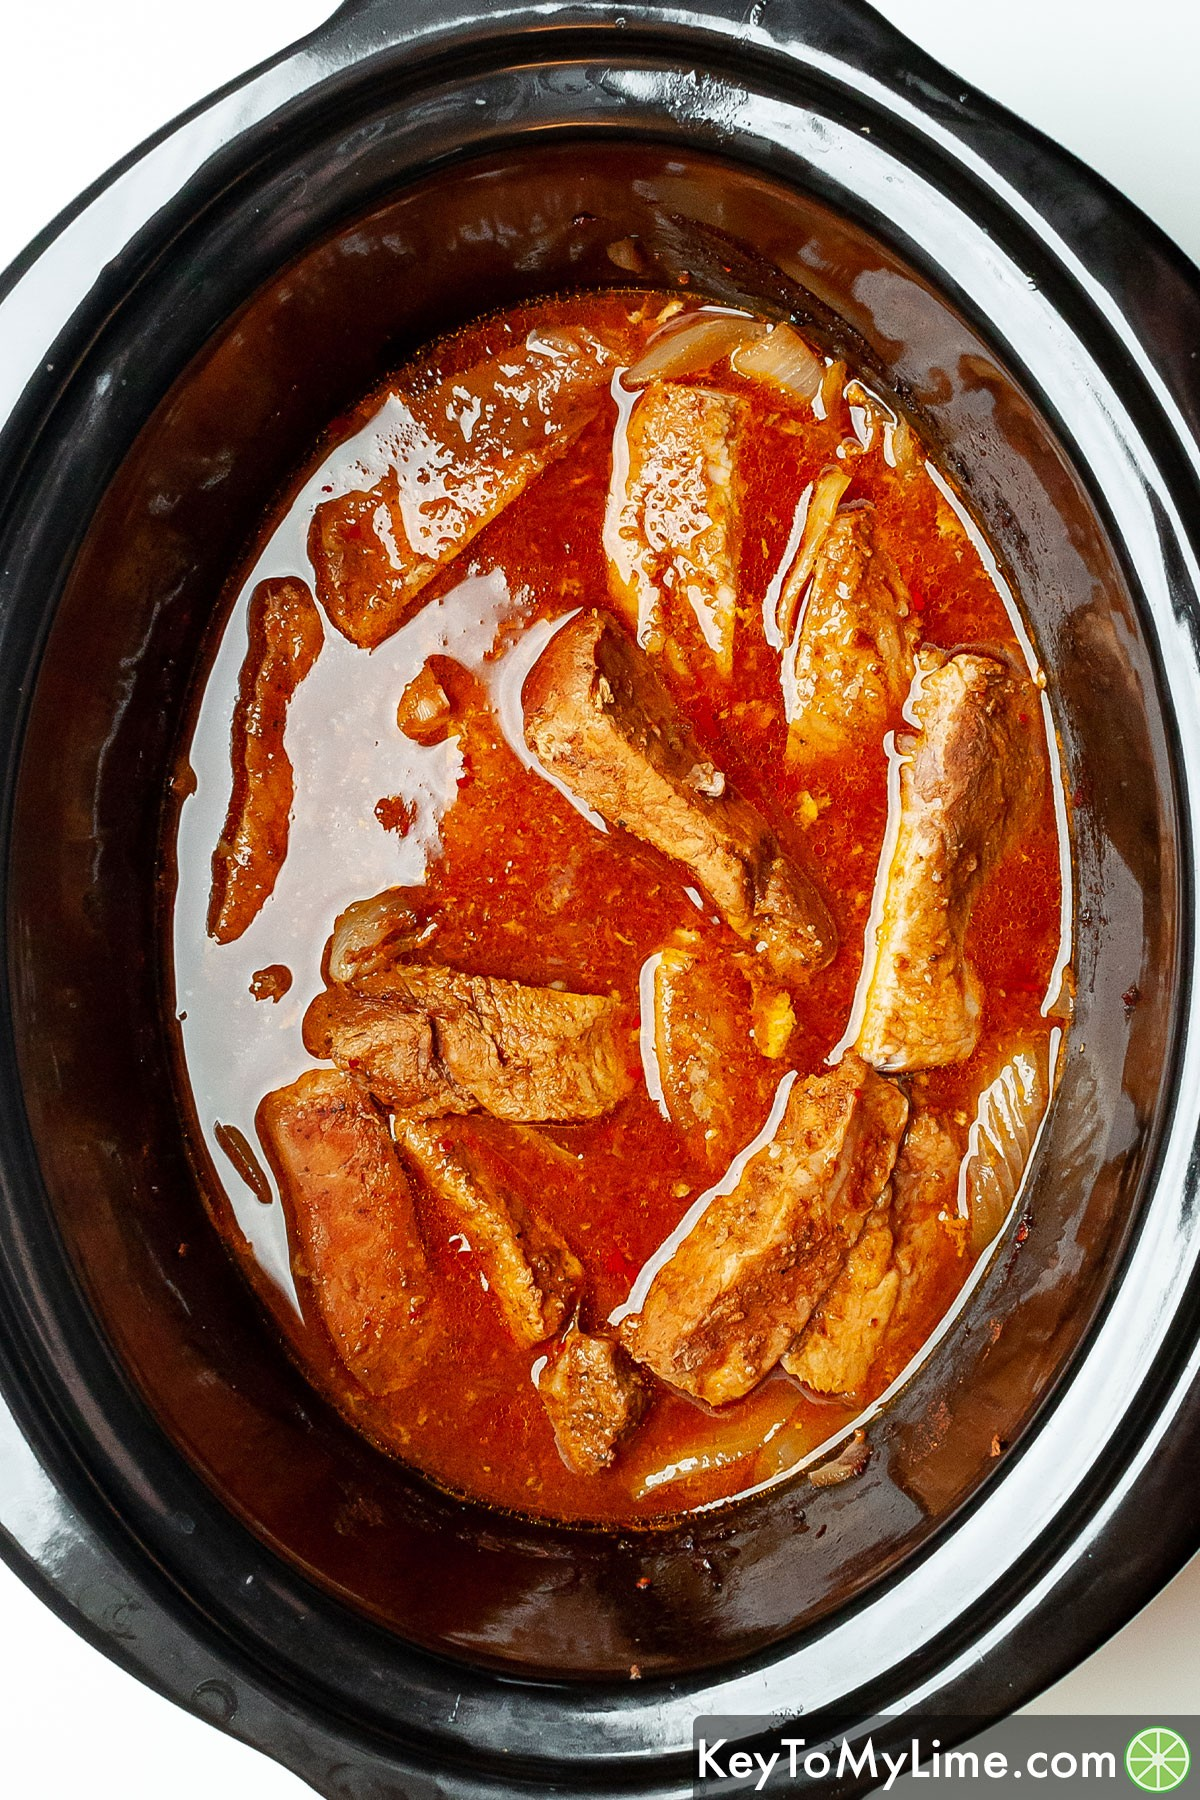 An overhead image of country style pork ribs in the slow cooker.